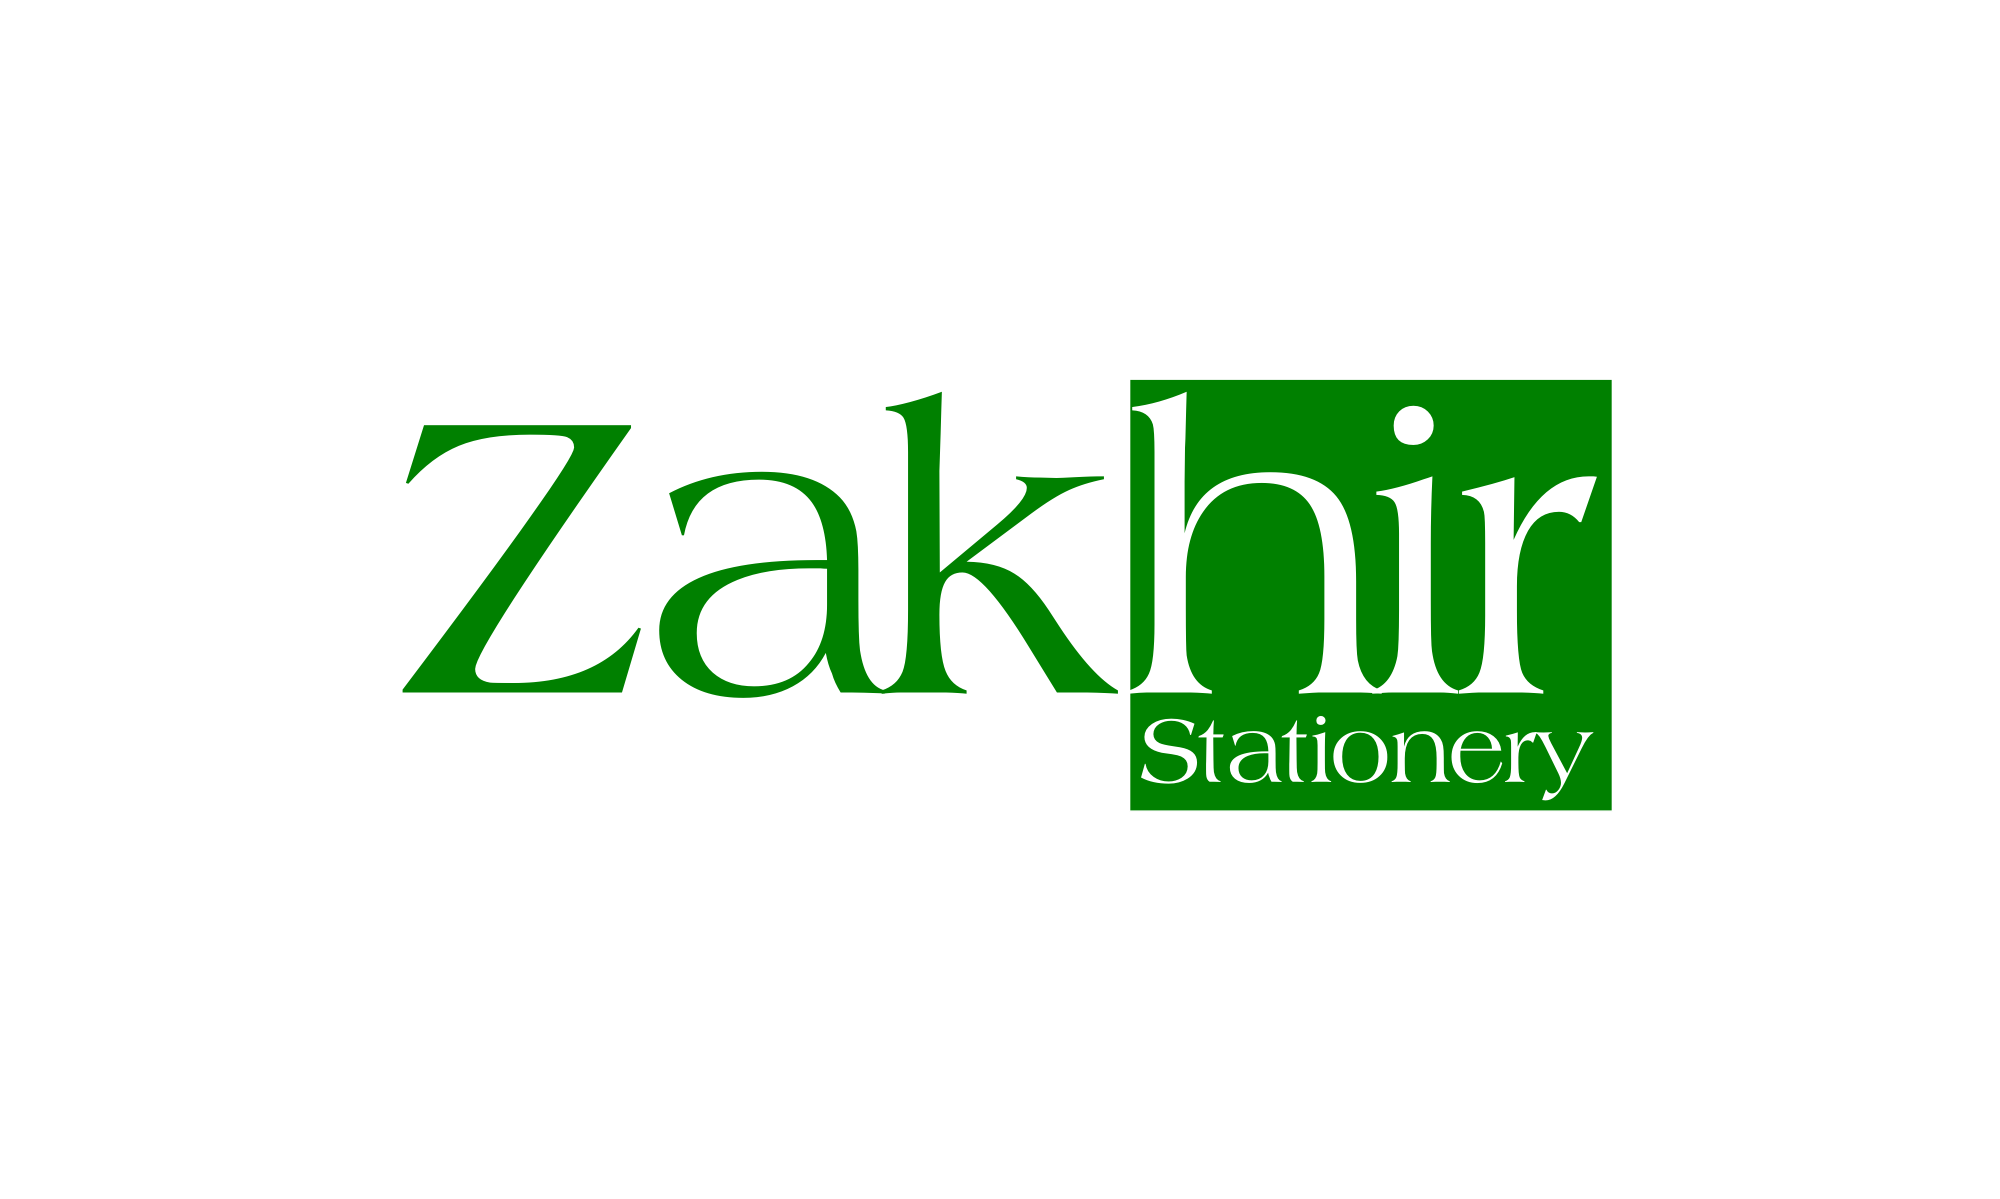 Logo Design by Gheburaseye - Entry No. 15 in the Logo Design Contest Zakhir Logo Design.